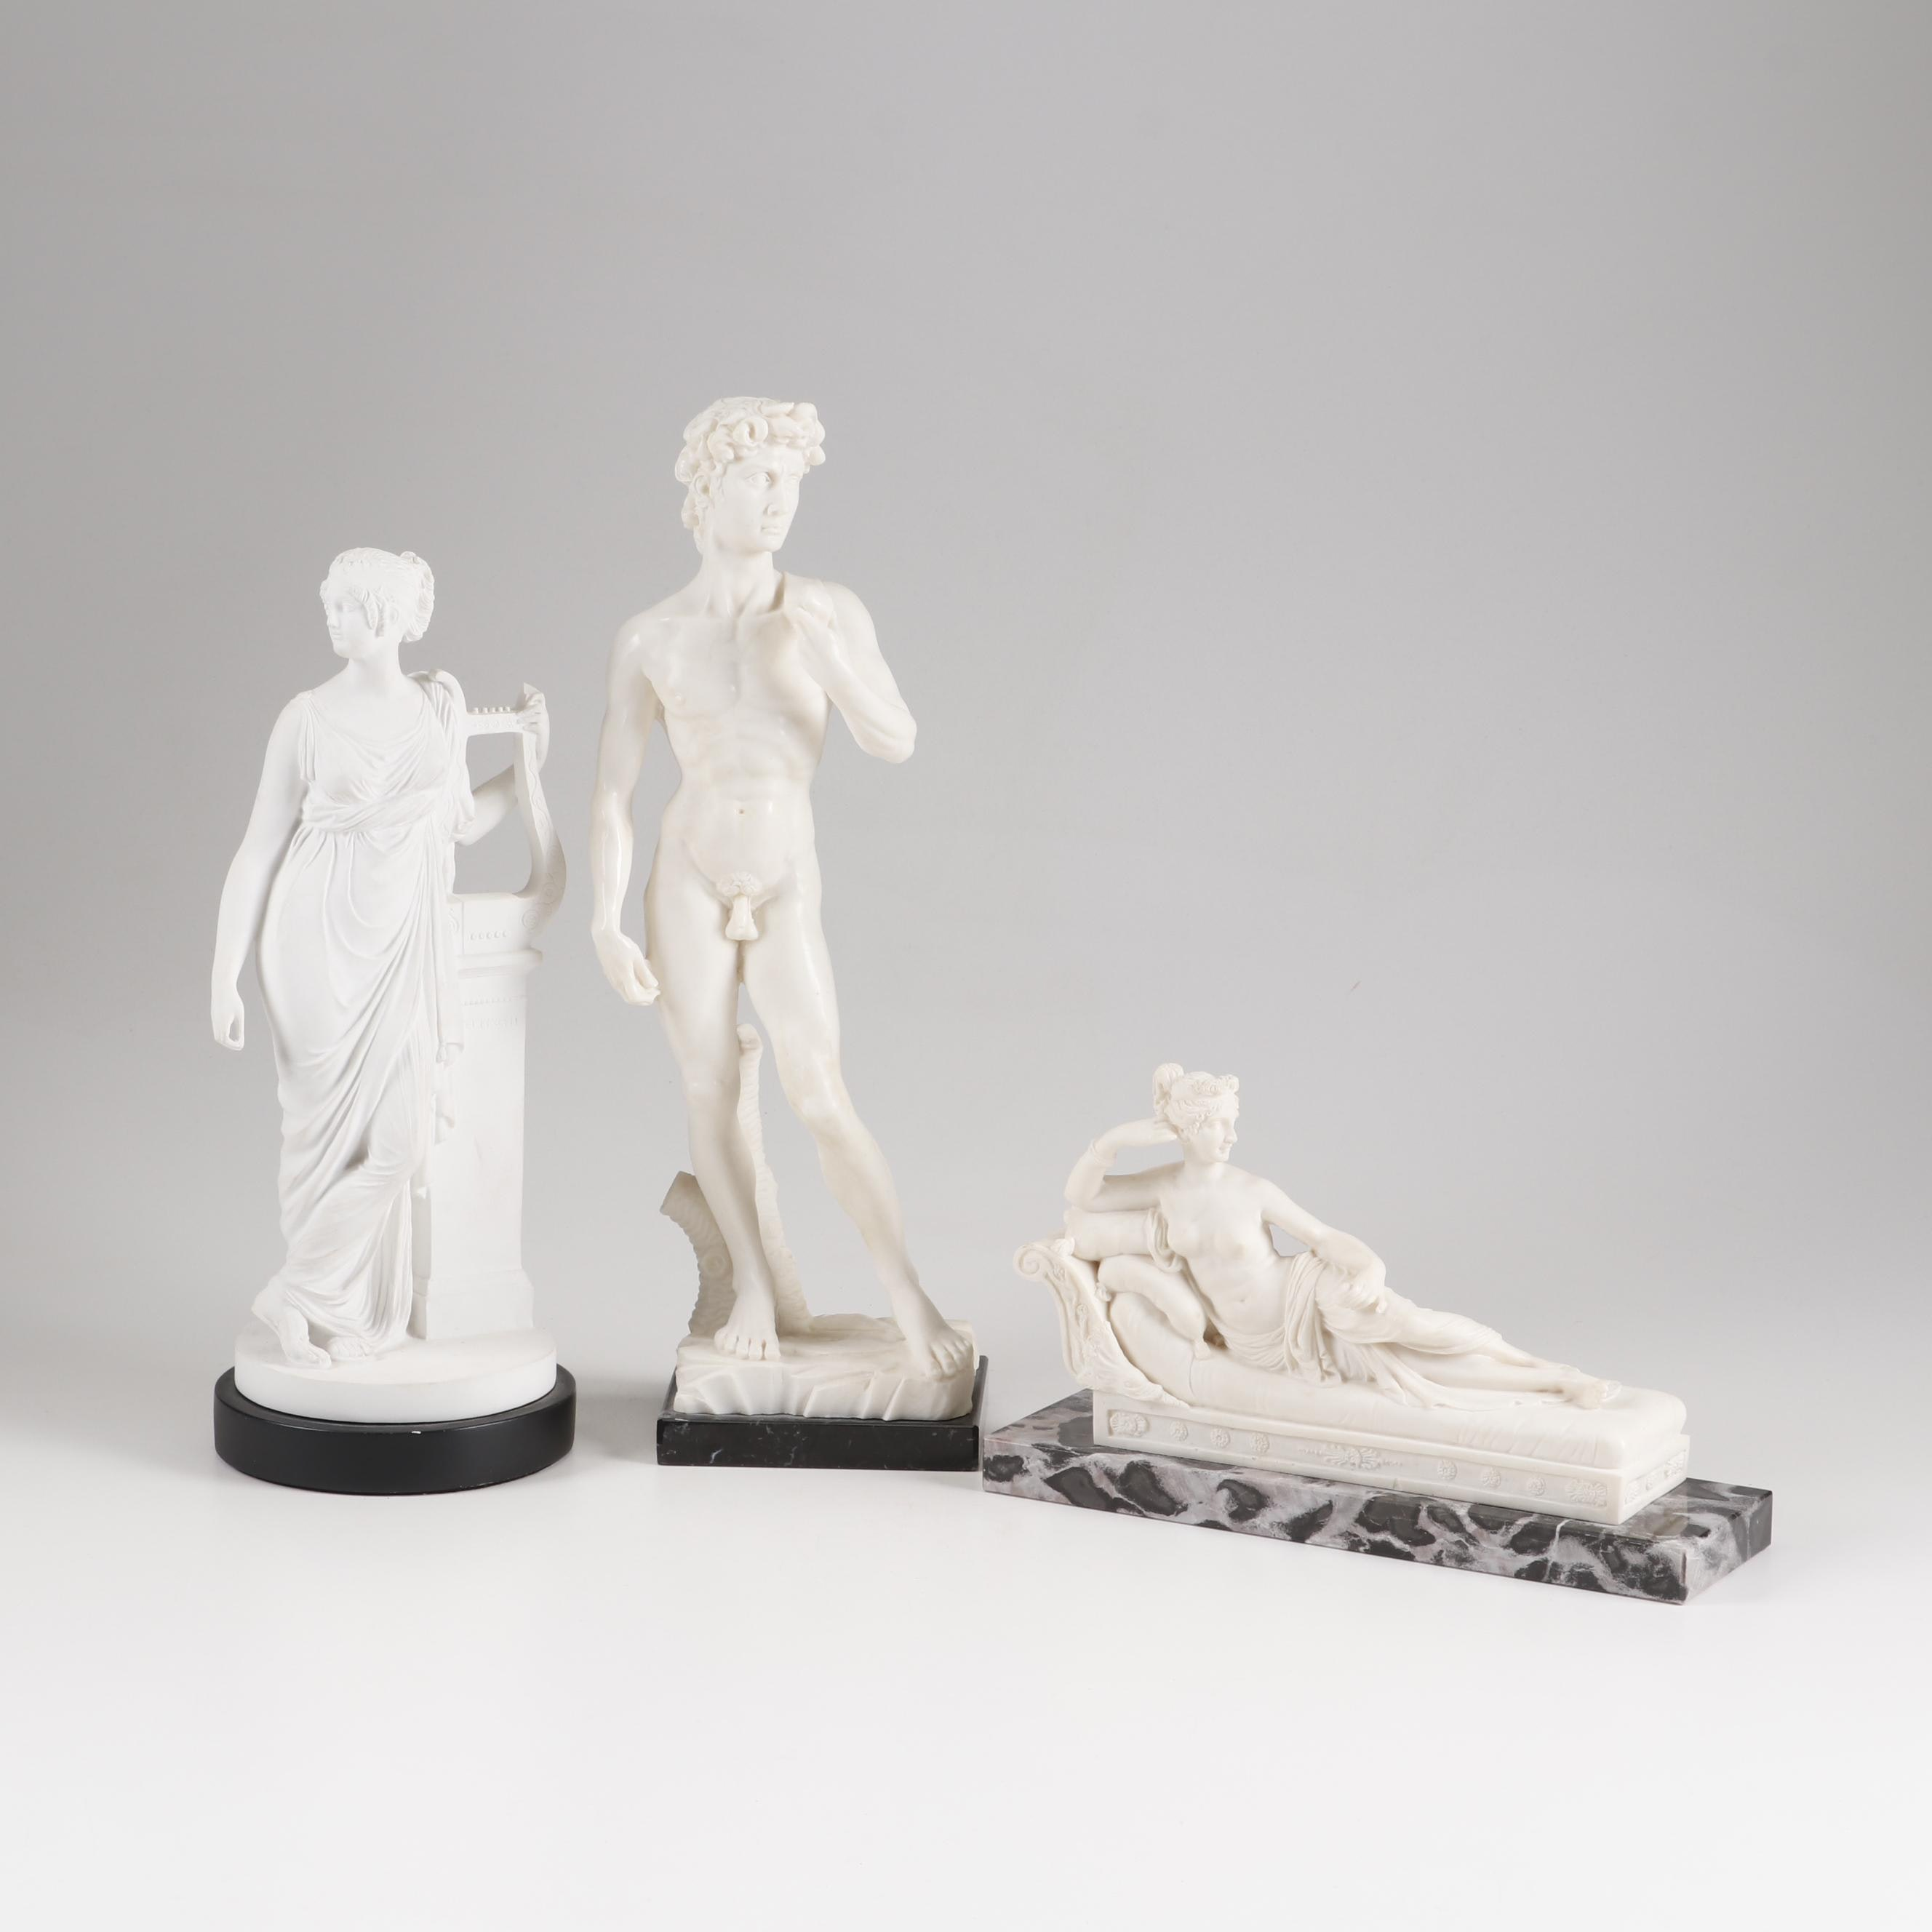 Copy Sculptures after Michelangelo and Antonio Canova and Greek Muse Sculpture